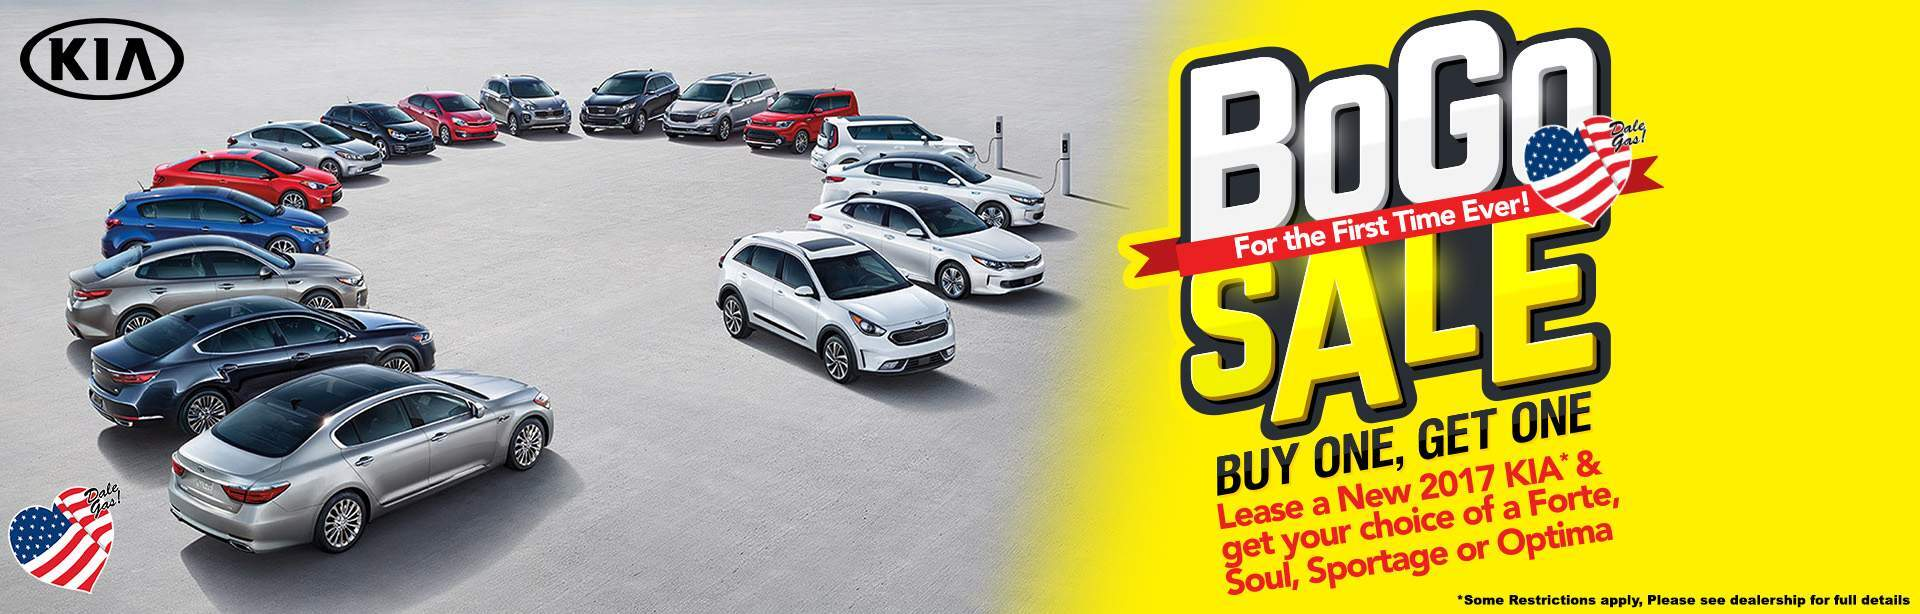 Bert Ogden Mission >> Welcome to Bert Ogden Mission Kia | New and Used Kia for sale | Mission, TX